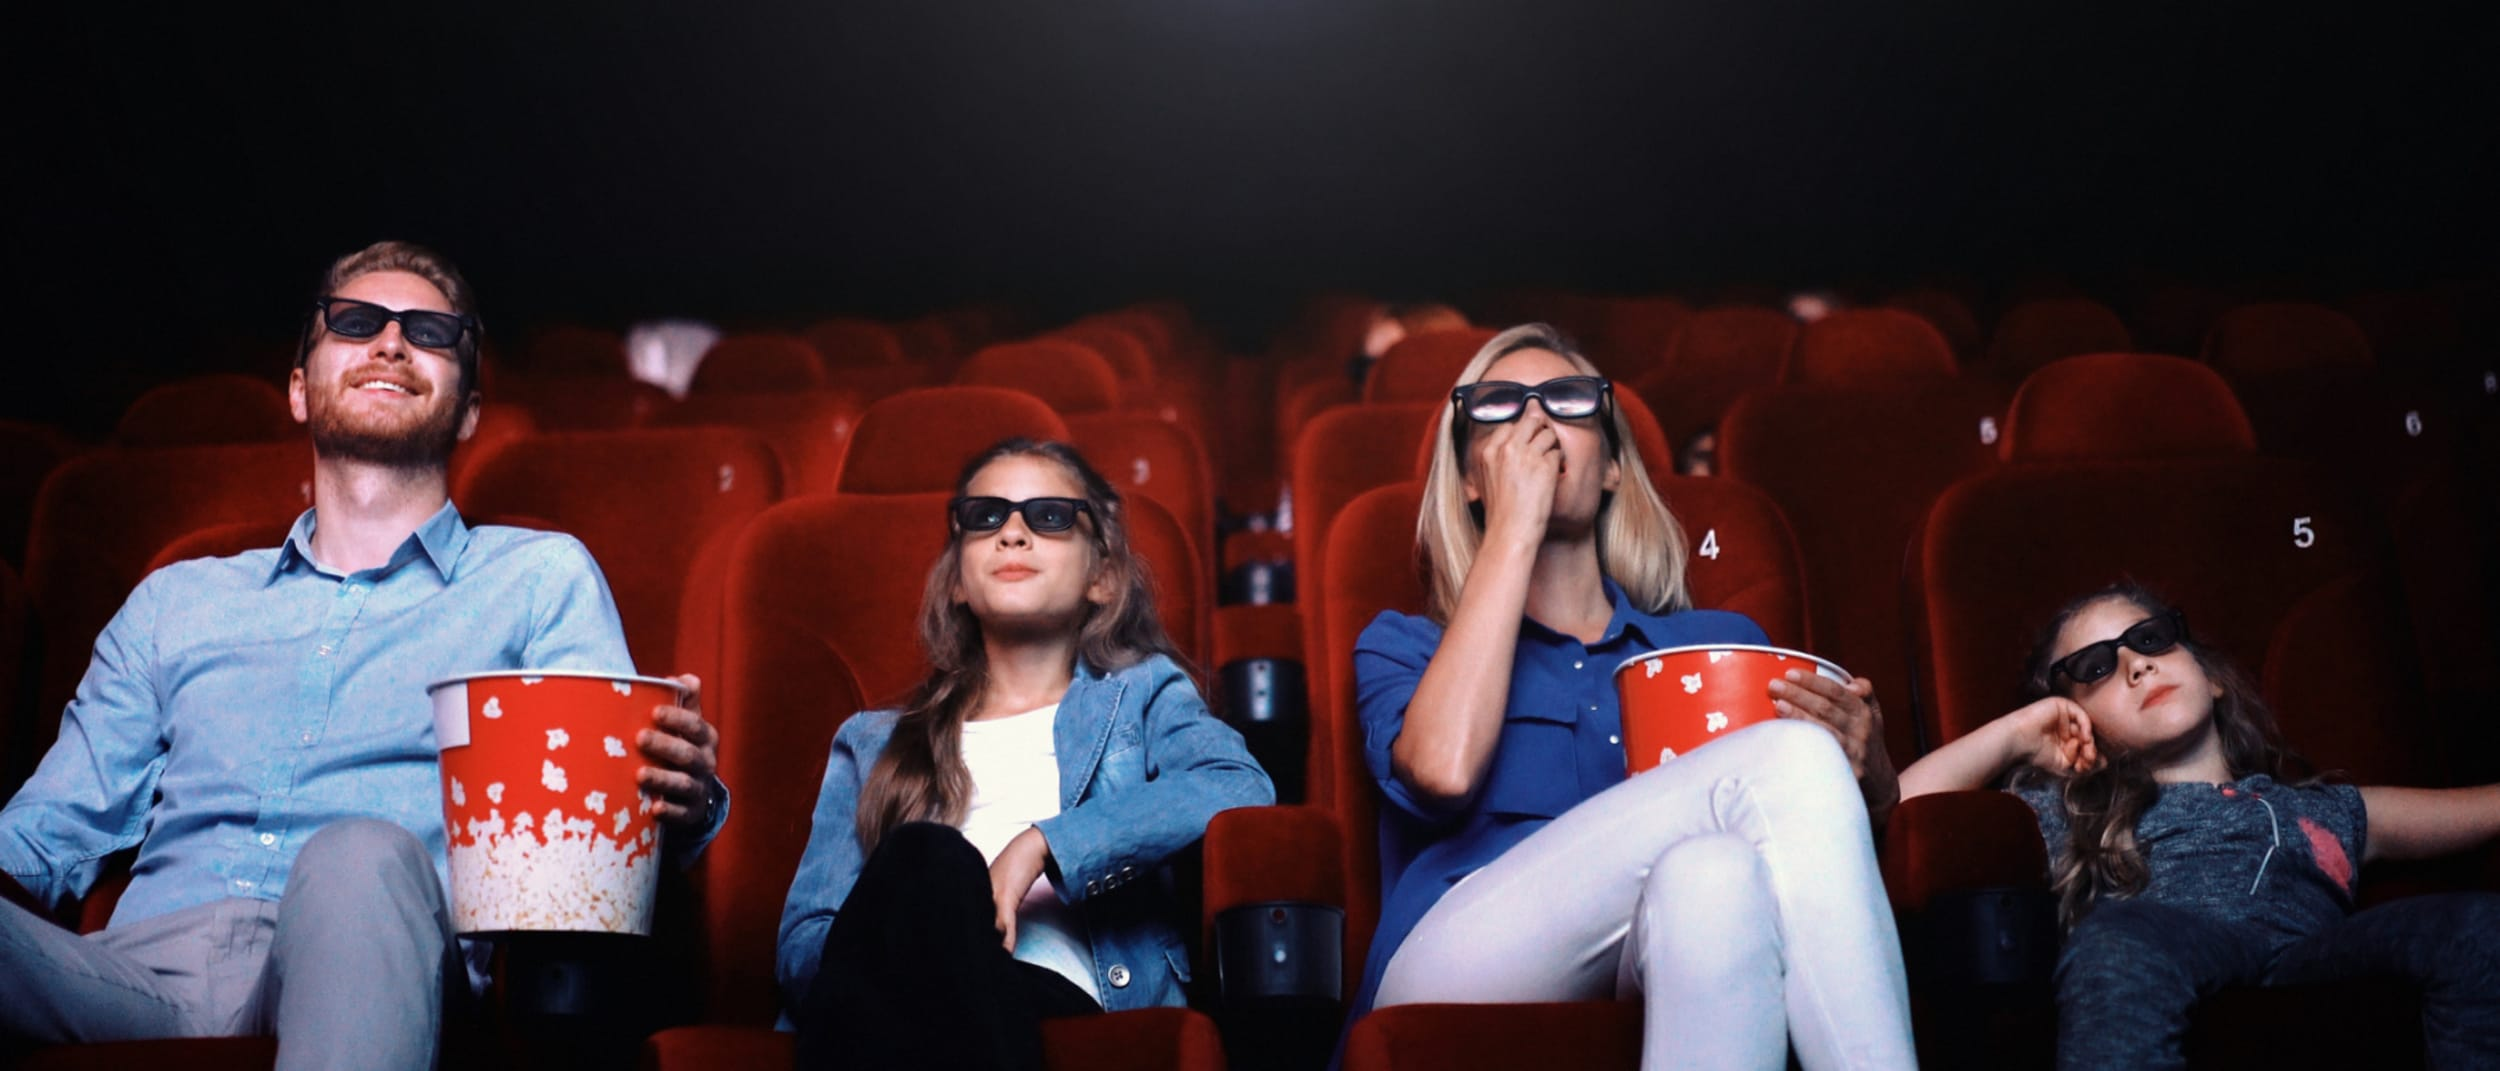 New family films at Event Cinemas in 2019